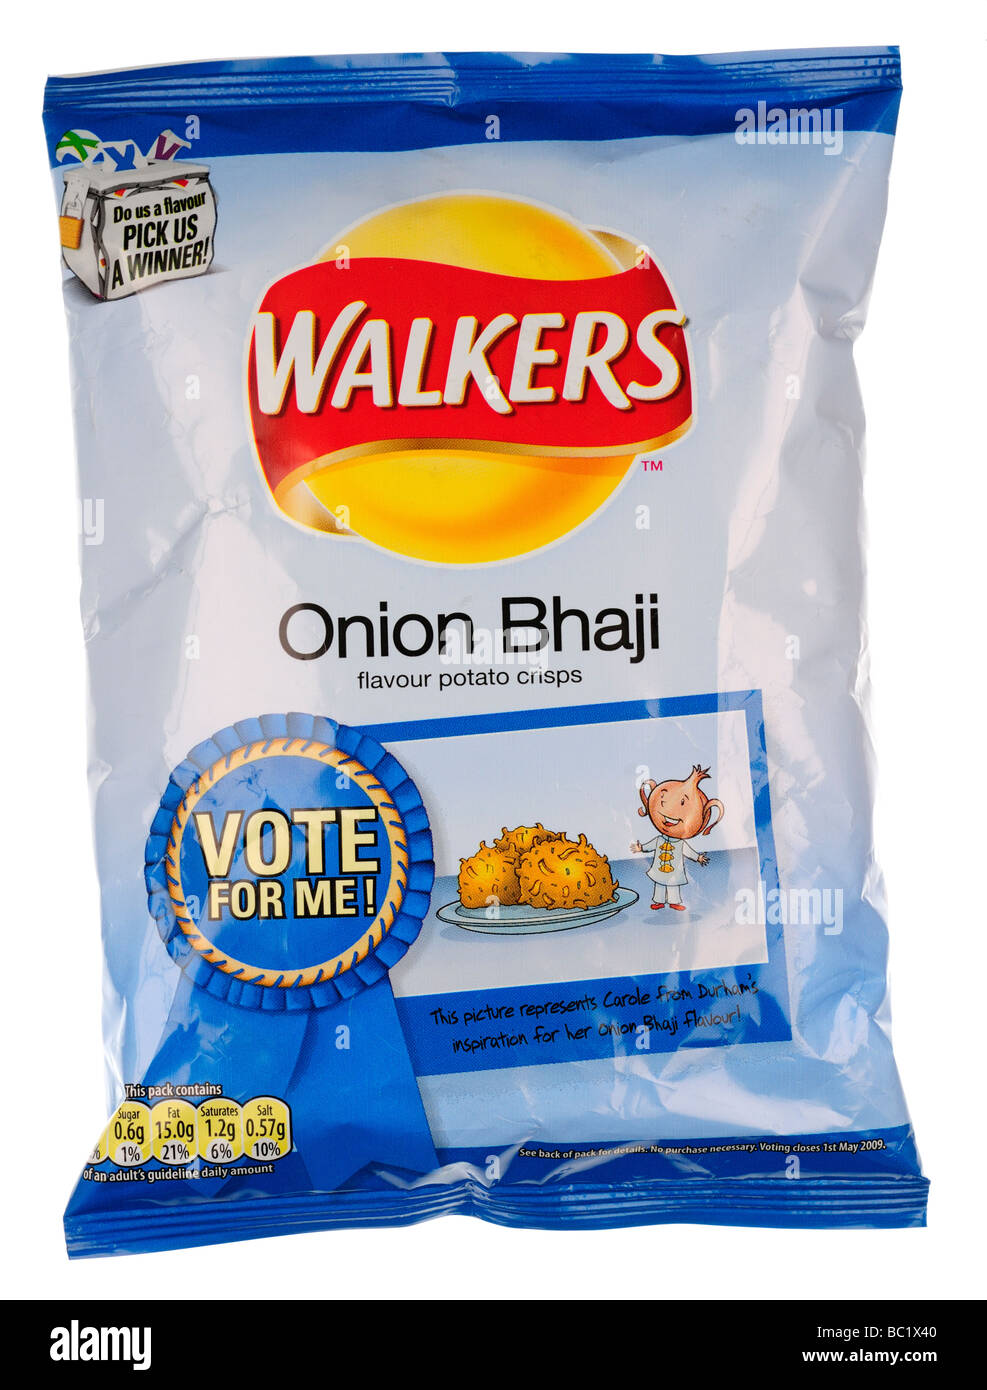 Packet of Walkers Onion Bhaji Flavour Crisps - Stock Image